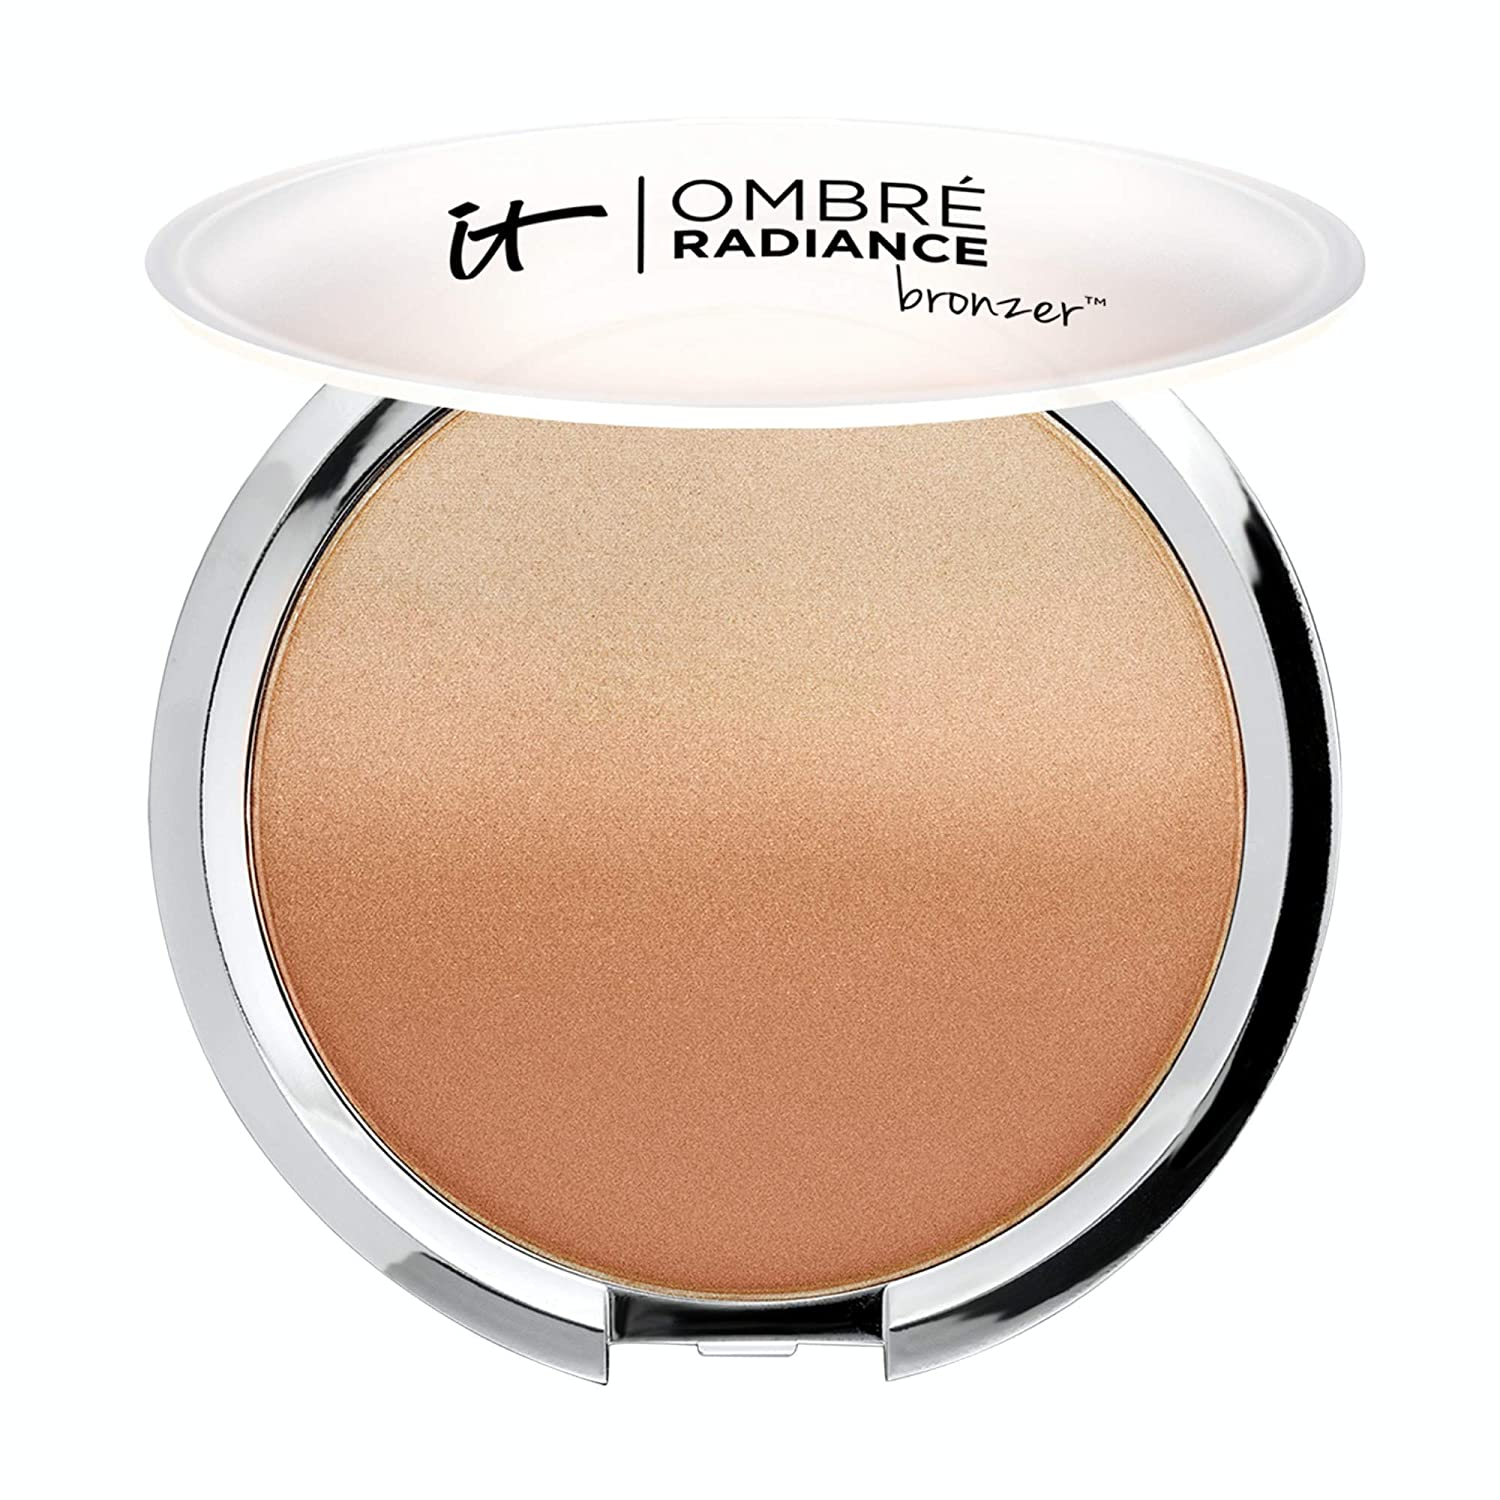 IT Cosmetics Ombre Radiance Bronzer - Matte Glow & Subtle Radiance in One - All-Day, Waterproof, Budge-Proof Formula - With Anti-Aging Collagen & Peptides - 0.57 oz